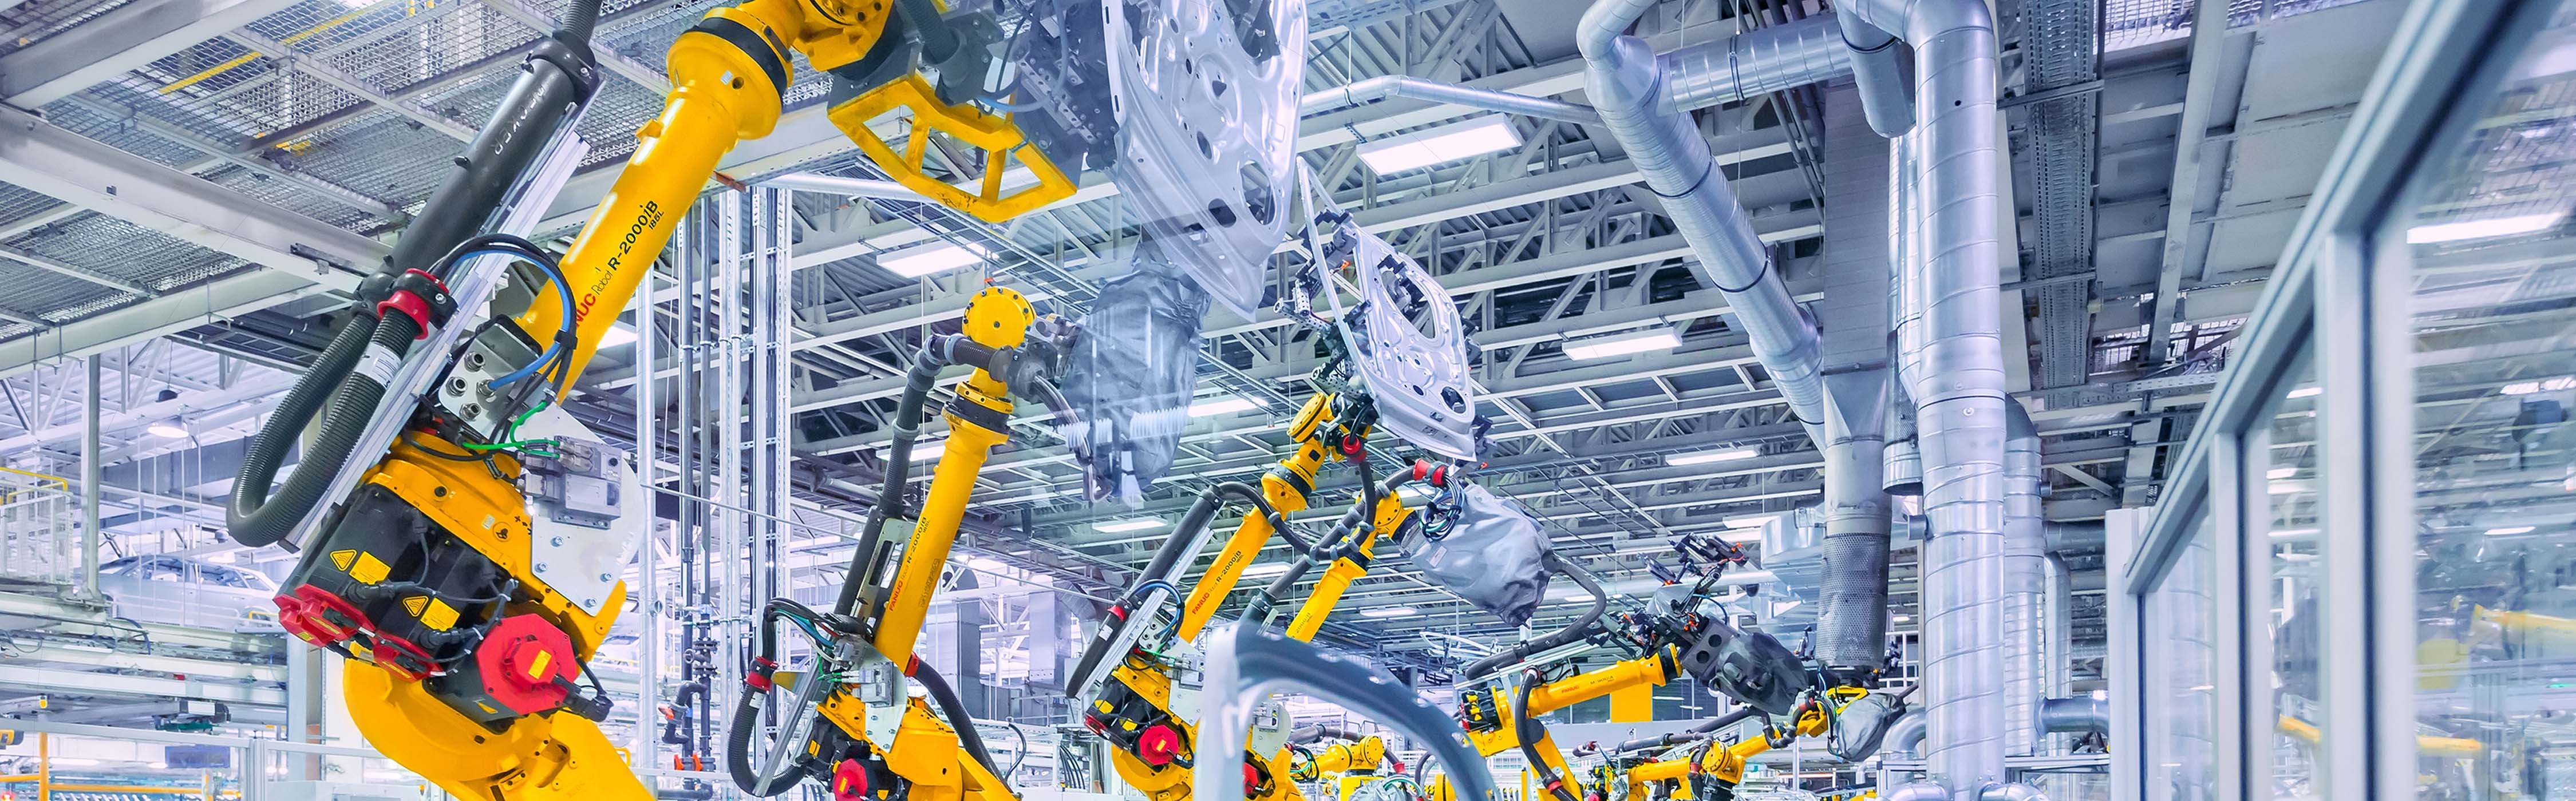 Fog Computing for Robotics and Industrial Automation